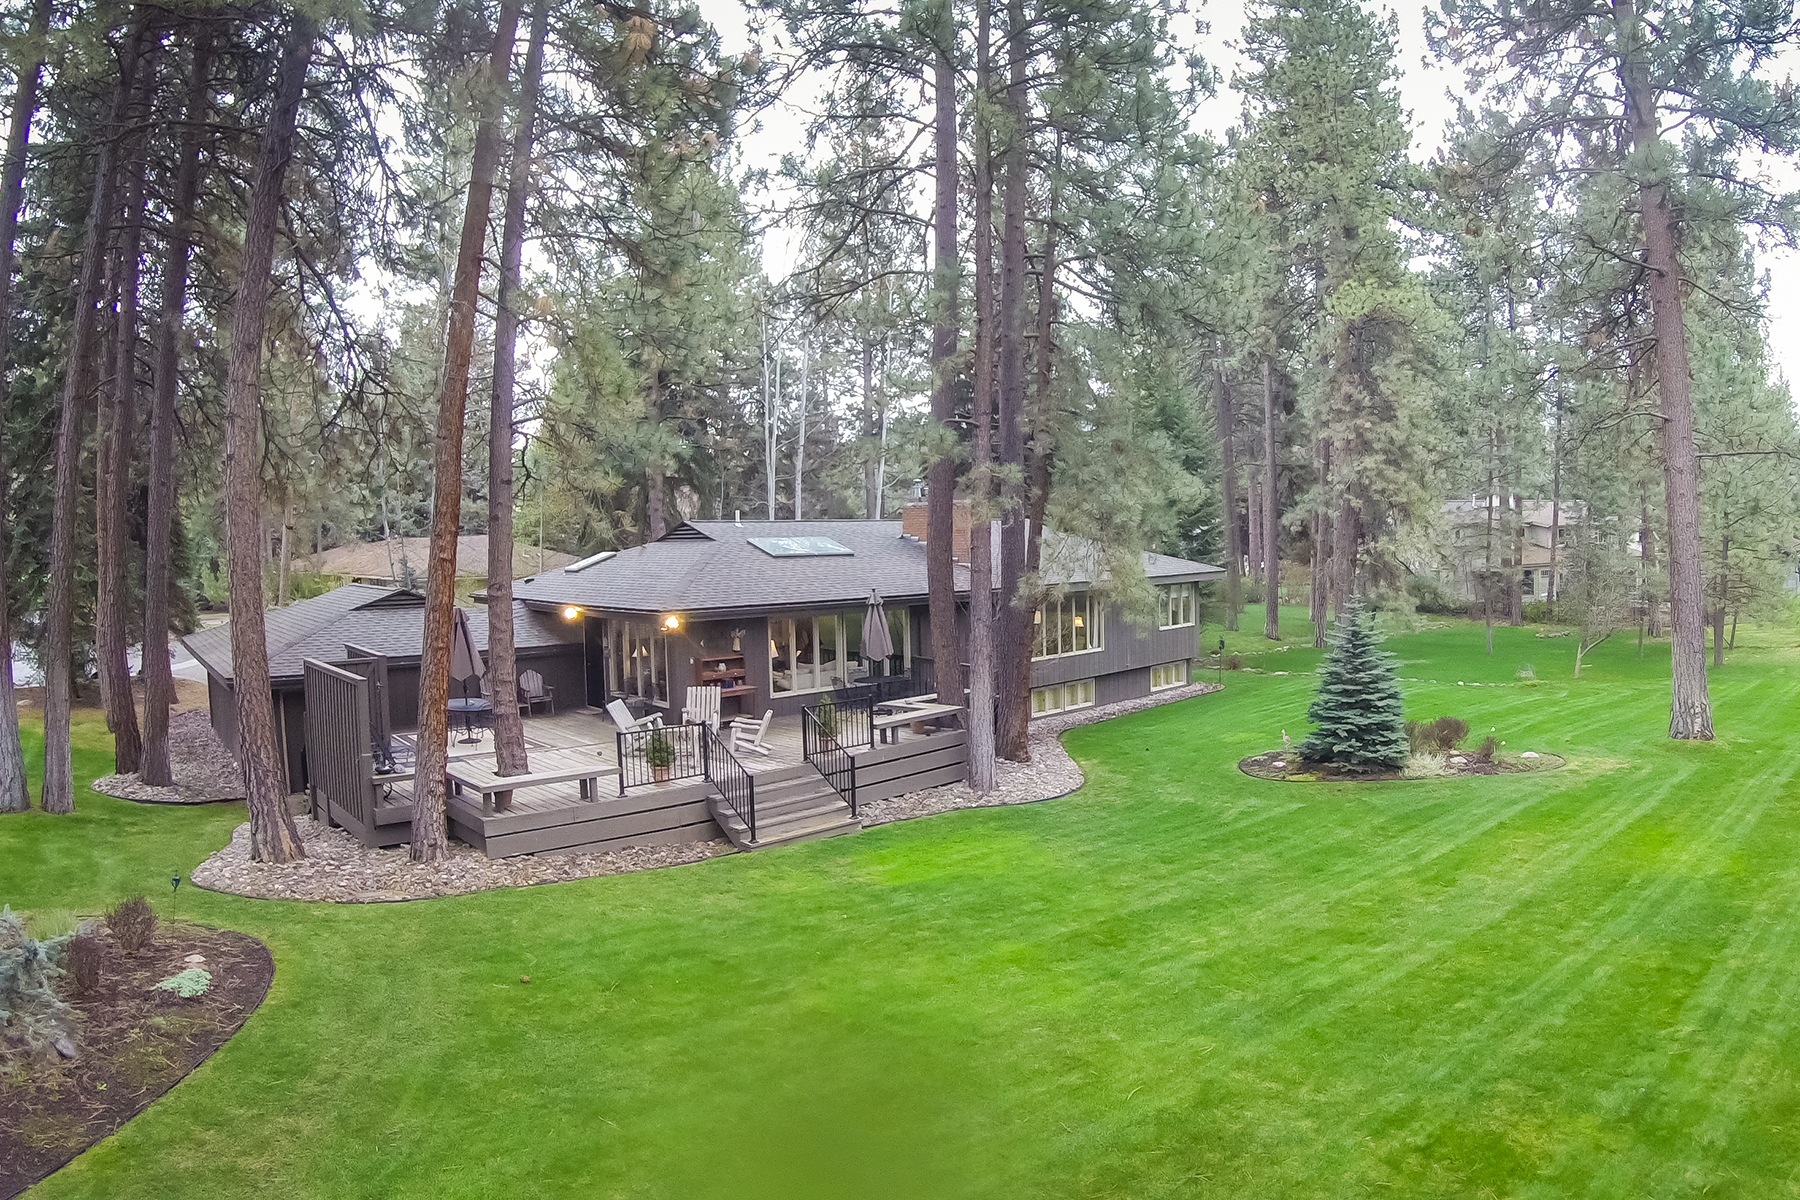 Single Family Home for Sale at 903 Royal Pines Court Missoula, Montana, 59802 United States